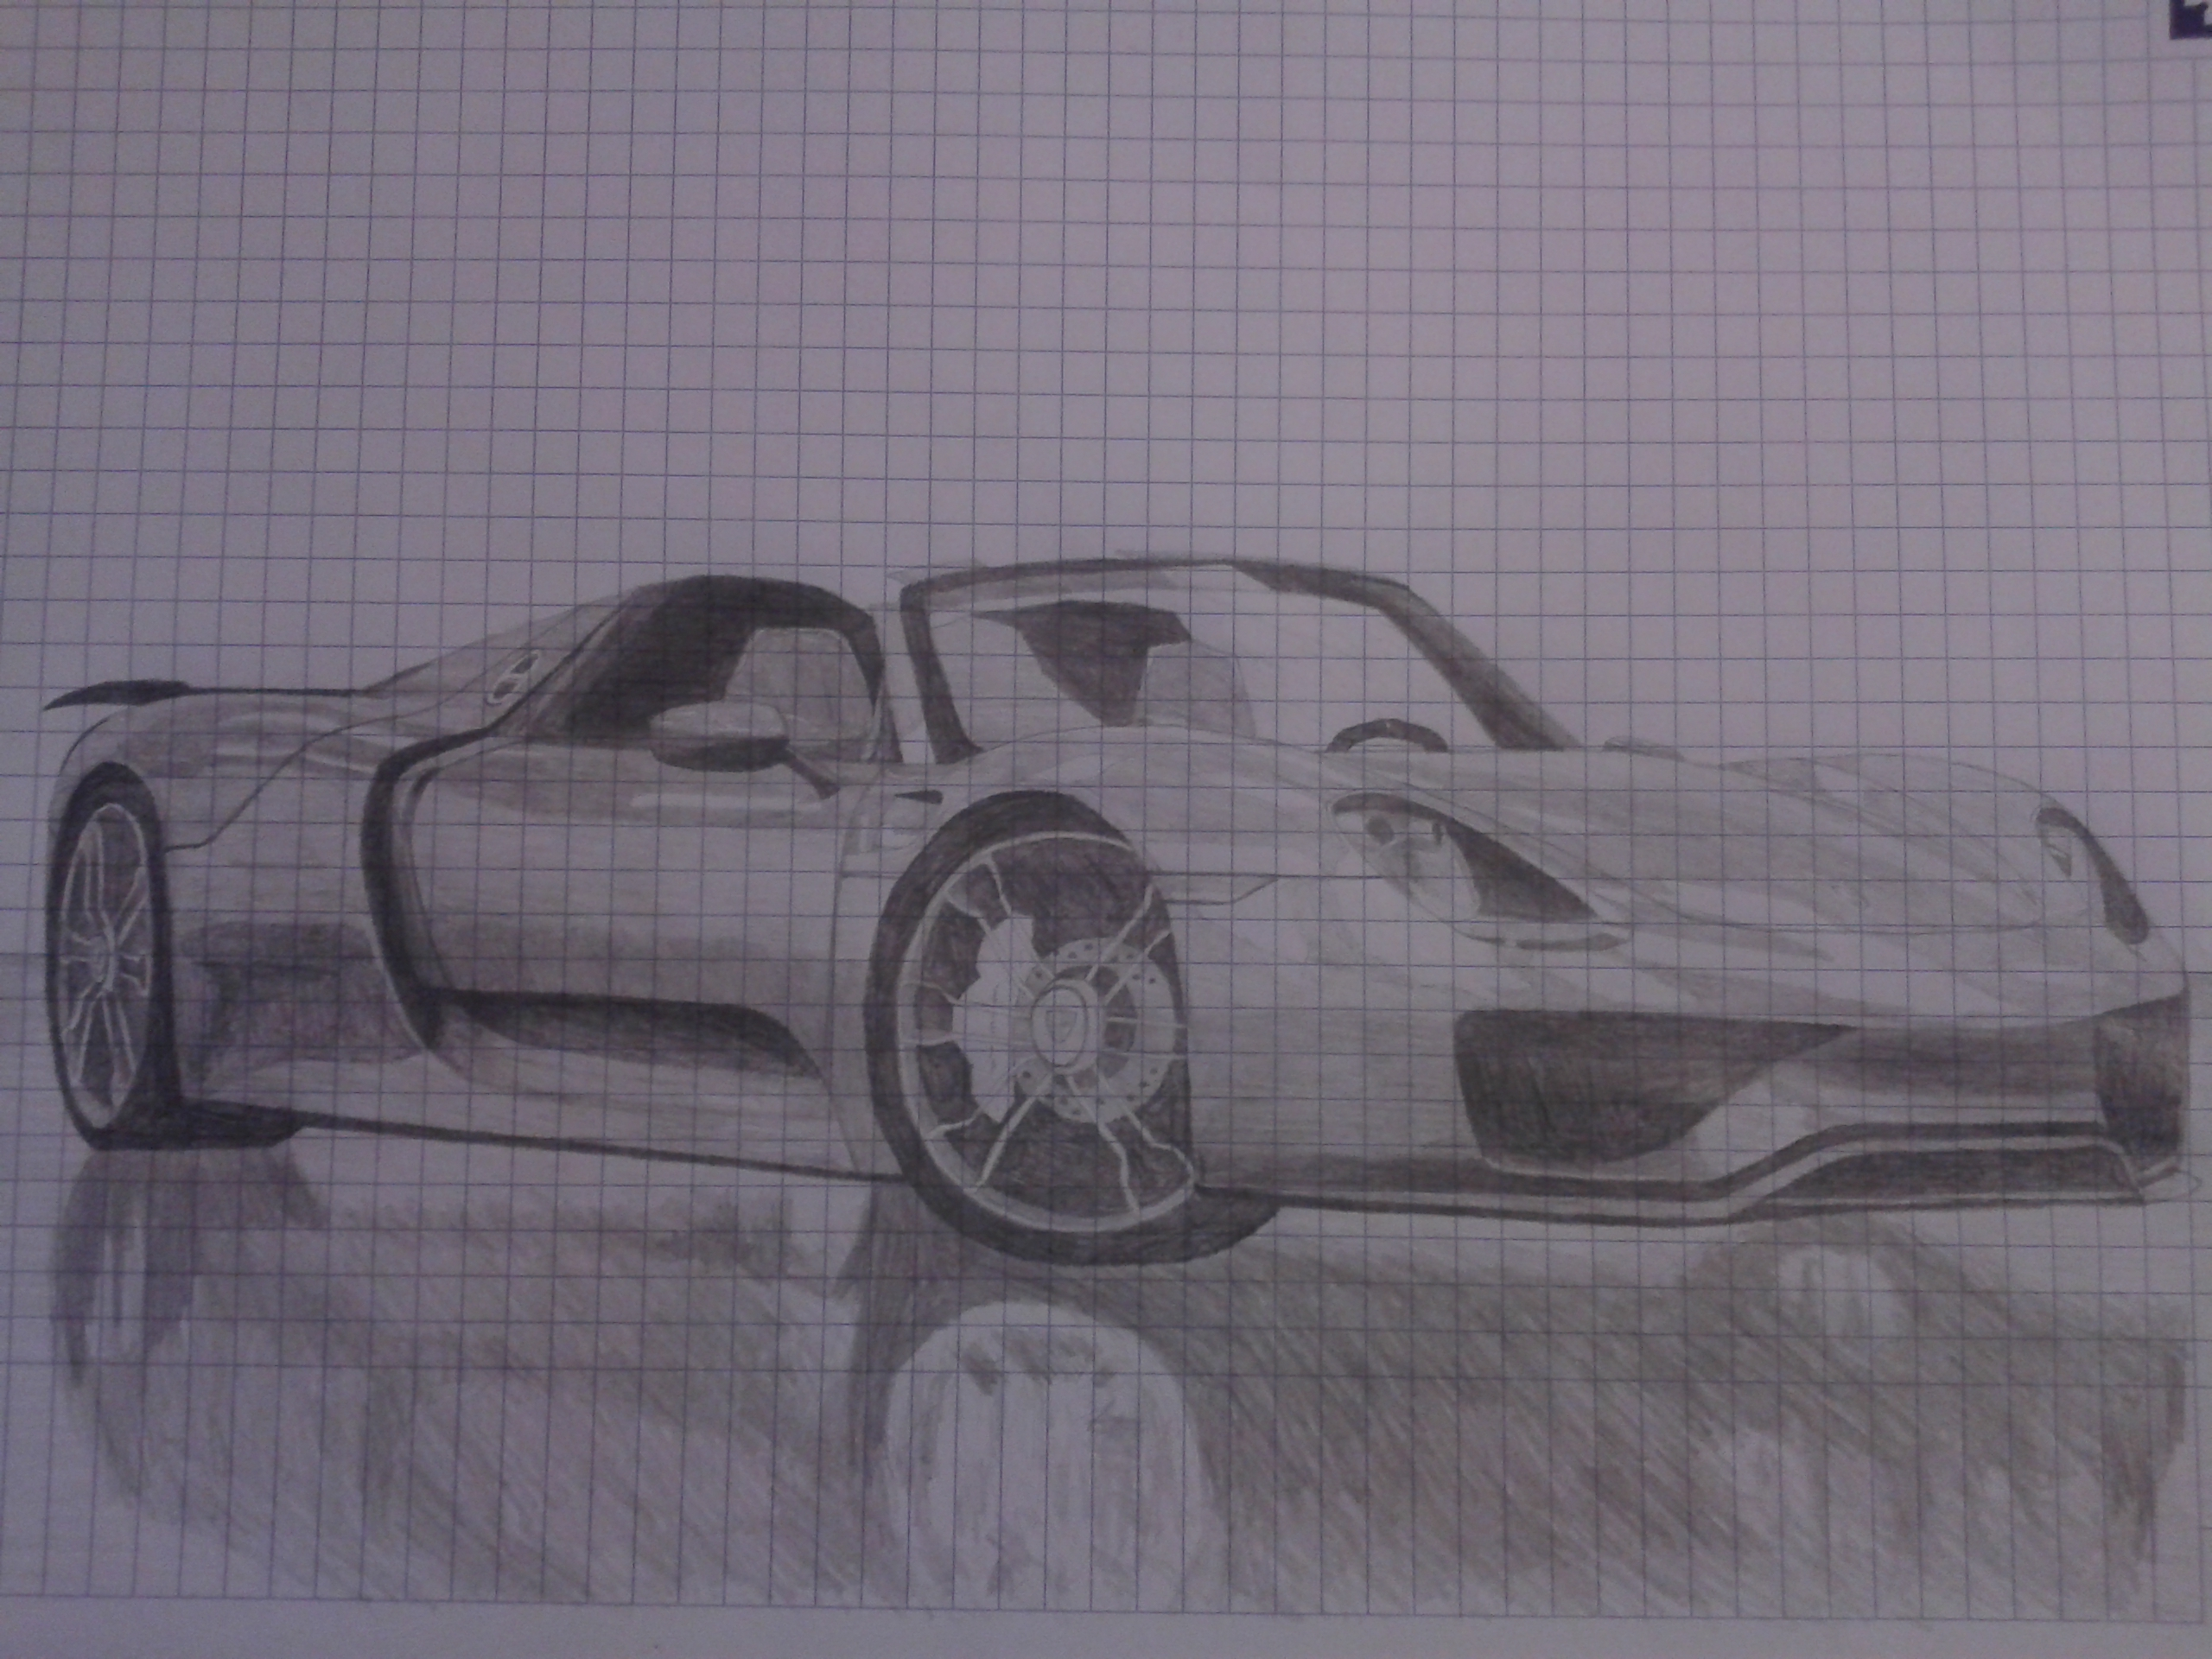 porsche 918 spyder drawing by revvnar wallander on deviantart. Black Bedroom Furniture Sets. Home Design Ideas